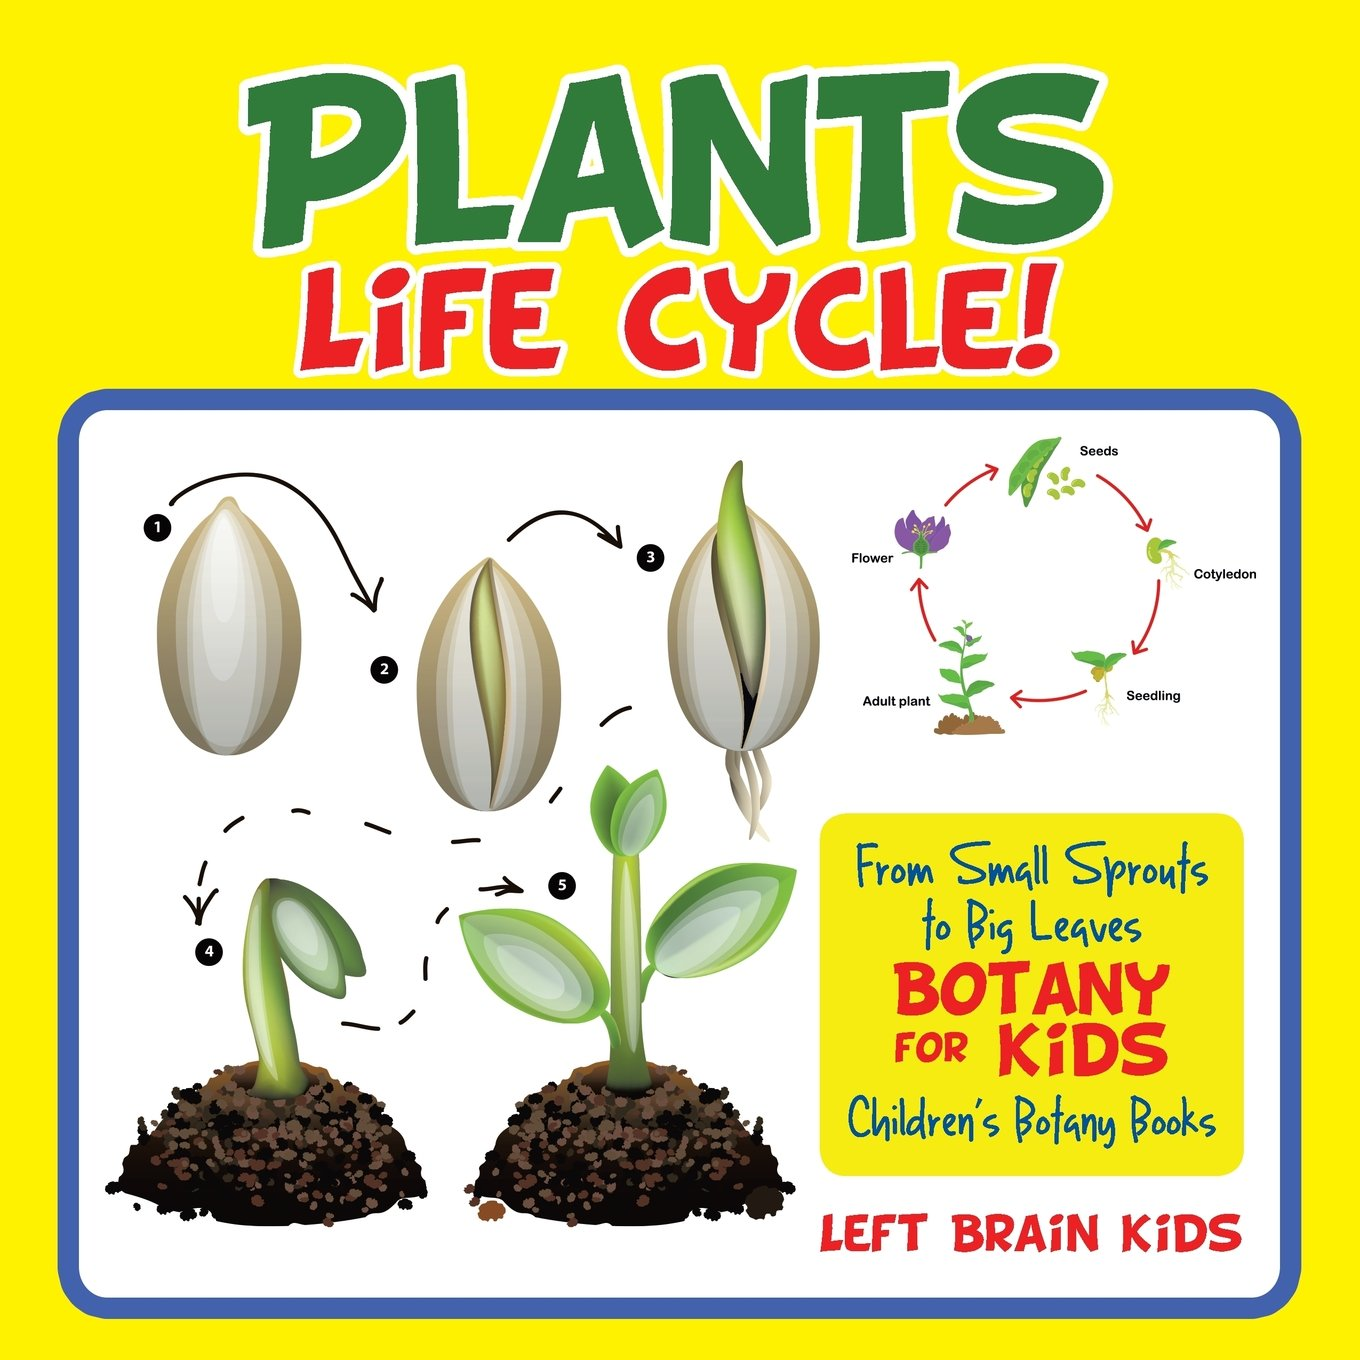 A Plant's Life Cycle! From Small Sprouts to Big Leaves